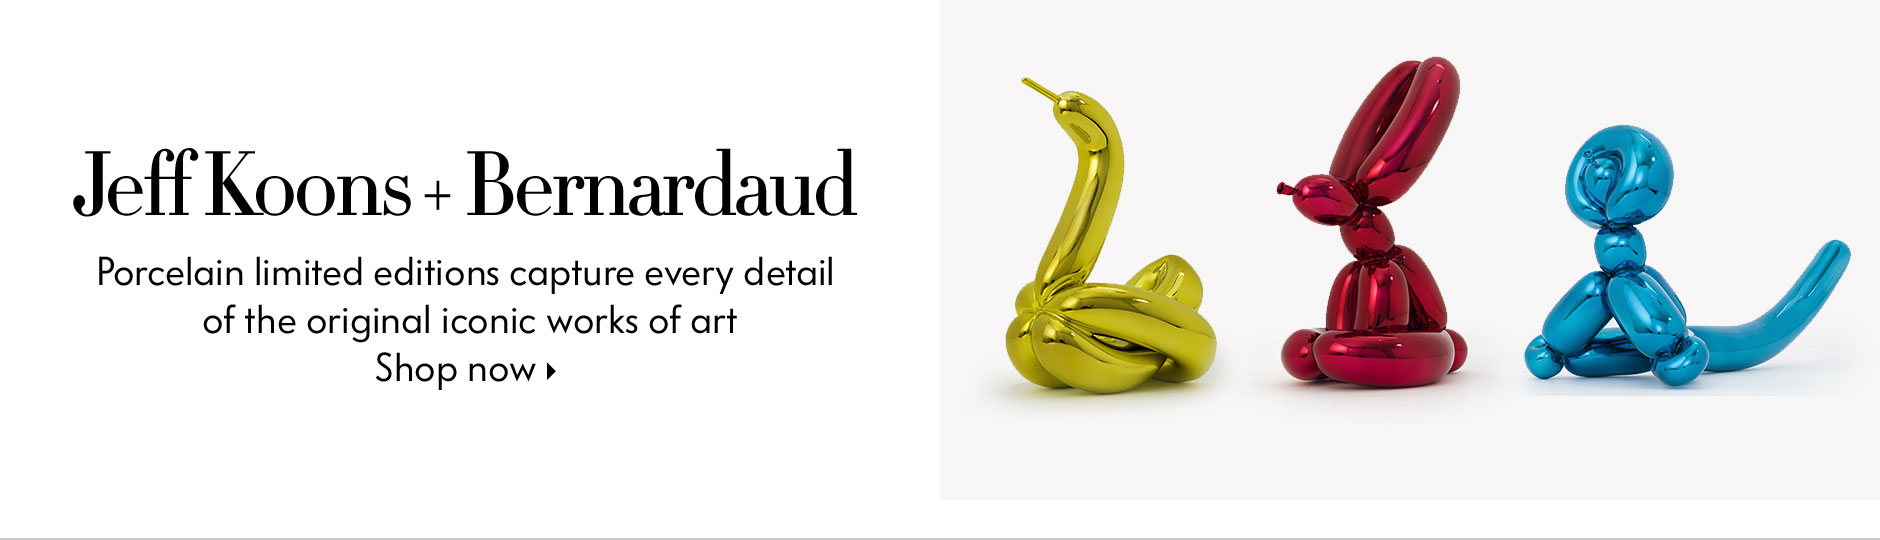 Jeff Koons + Bernardaud - Porcelain limited editions capture every detail of the original iconic works of art